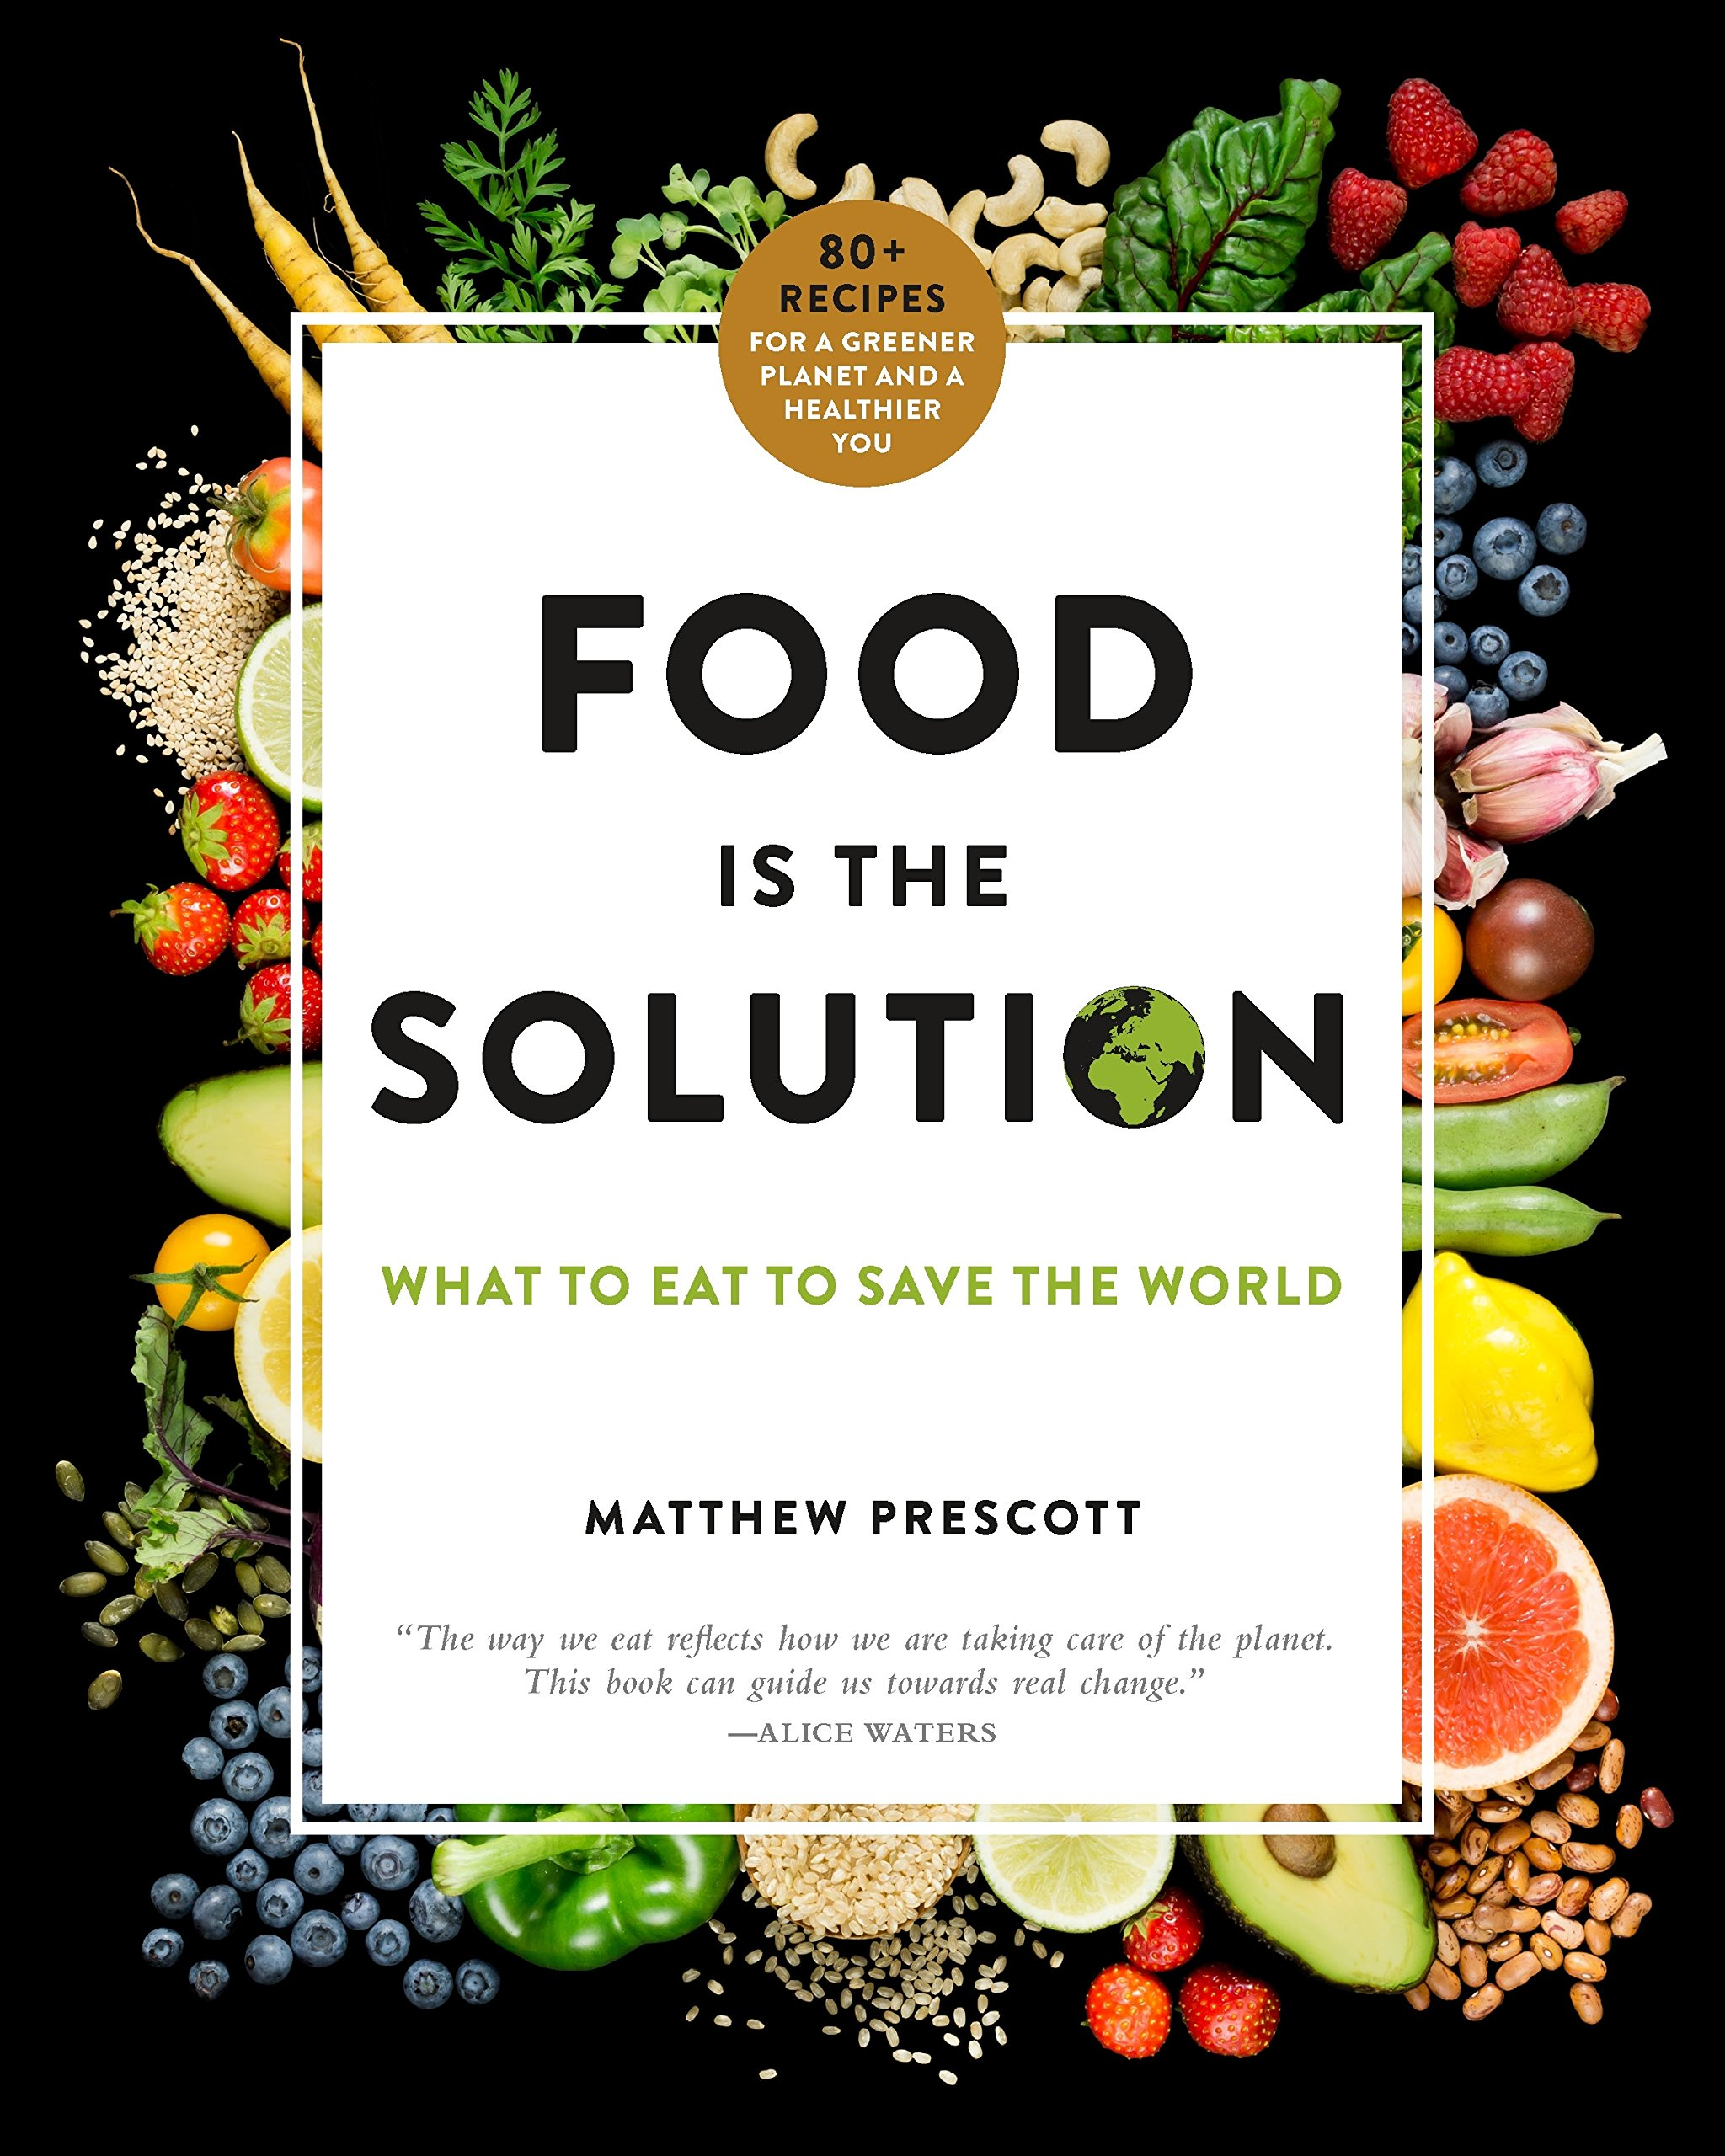 Food Is the Solution: What to Eat to Save the World - 80+ Recipes for a Greener Planet and a Healthier You (International Edition)